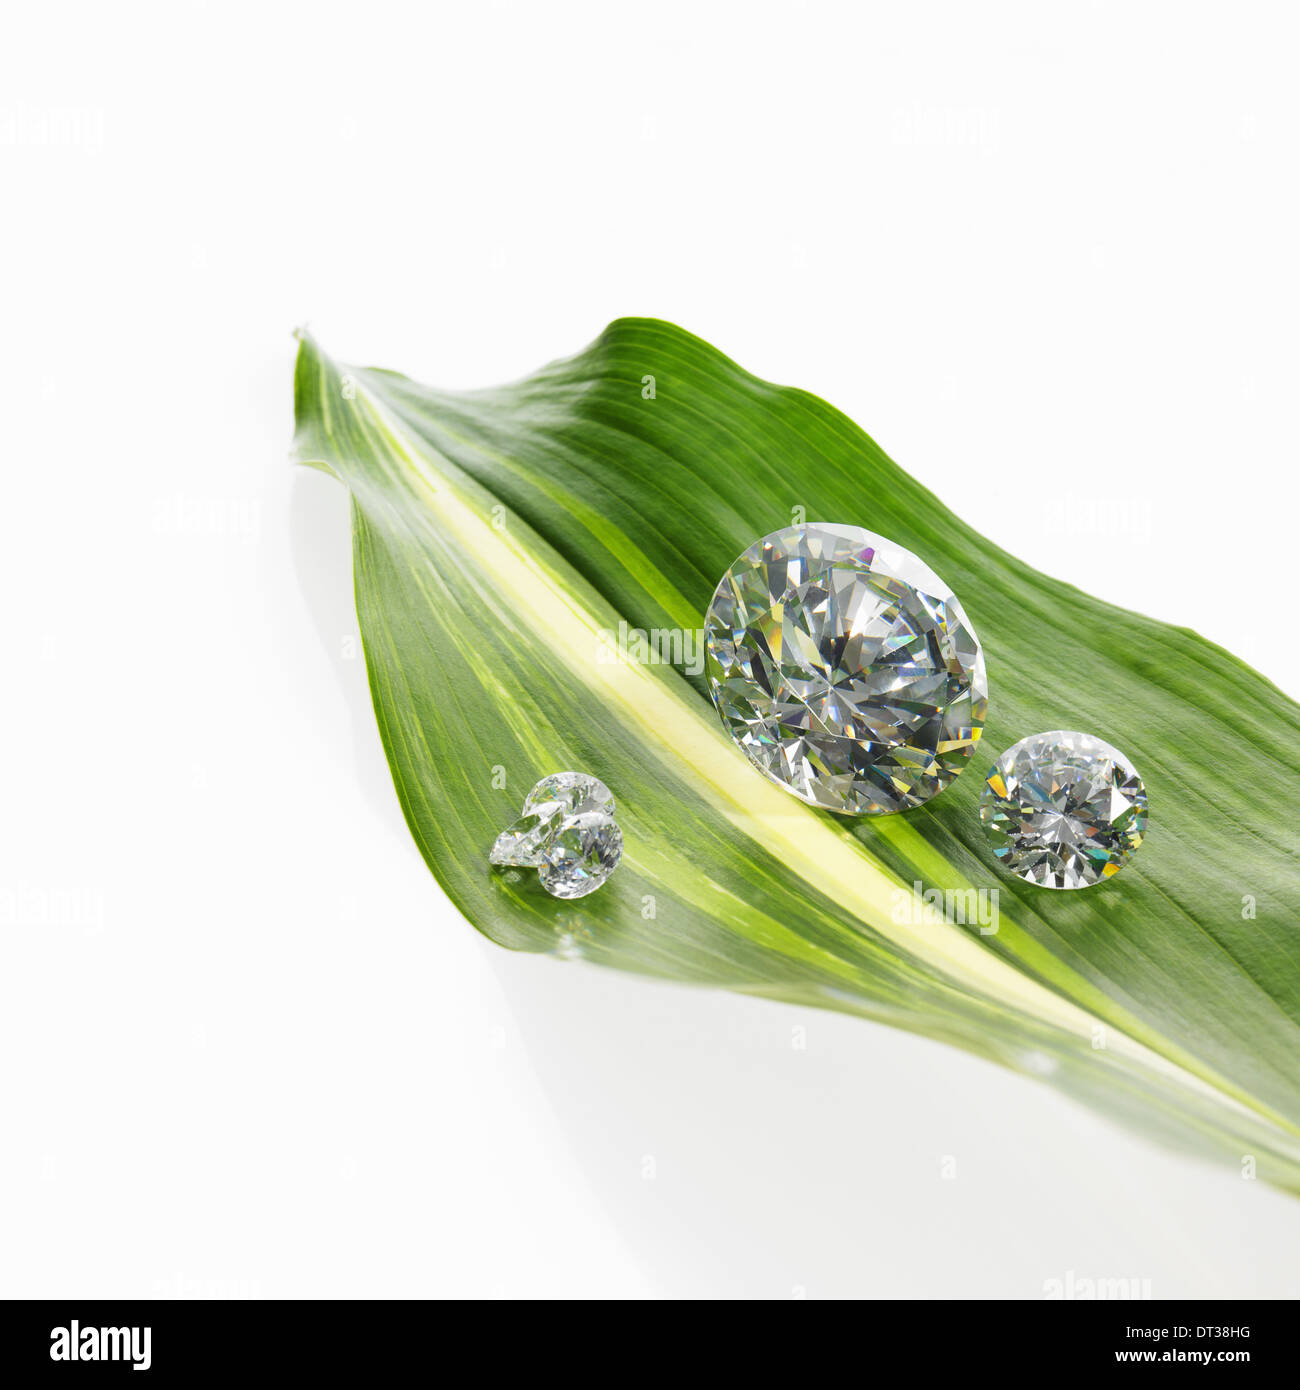 A leaf with a stripe marking with small glass reflective objects, or gems, gem cut sparkling. - Stock Image